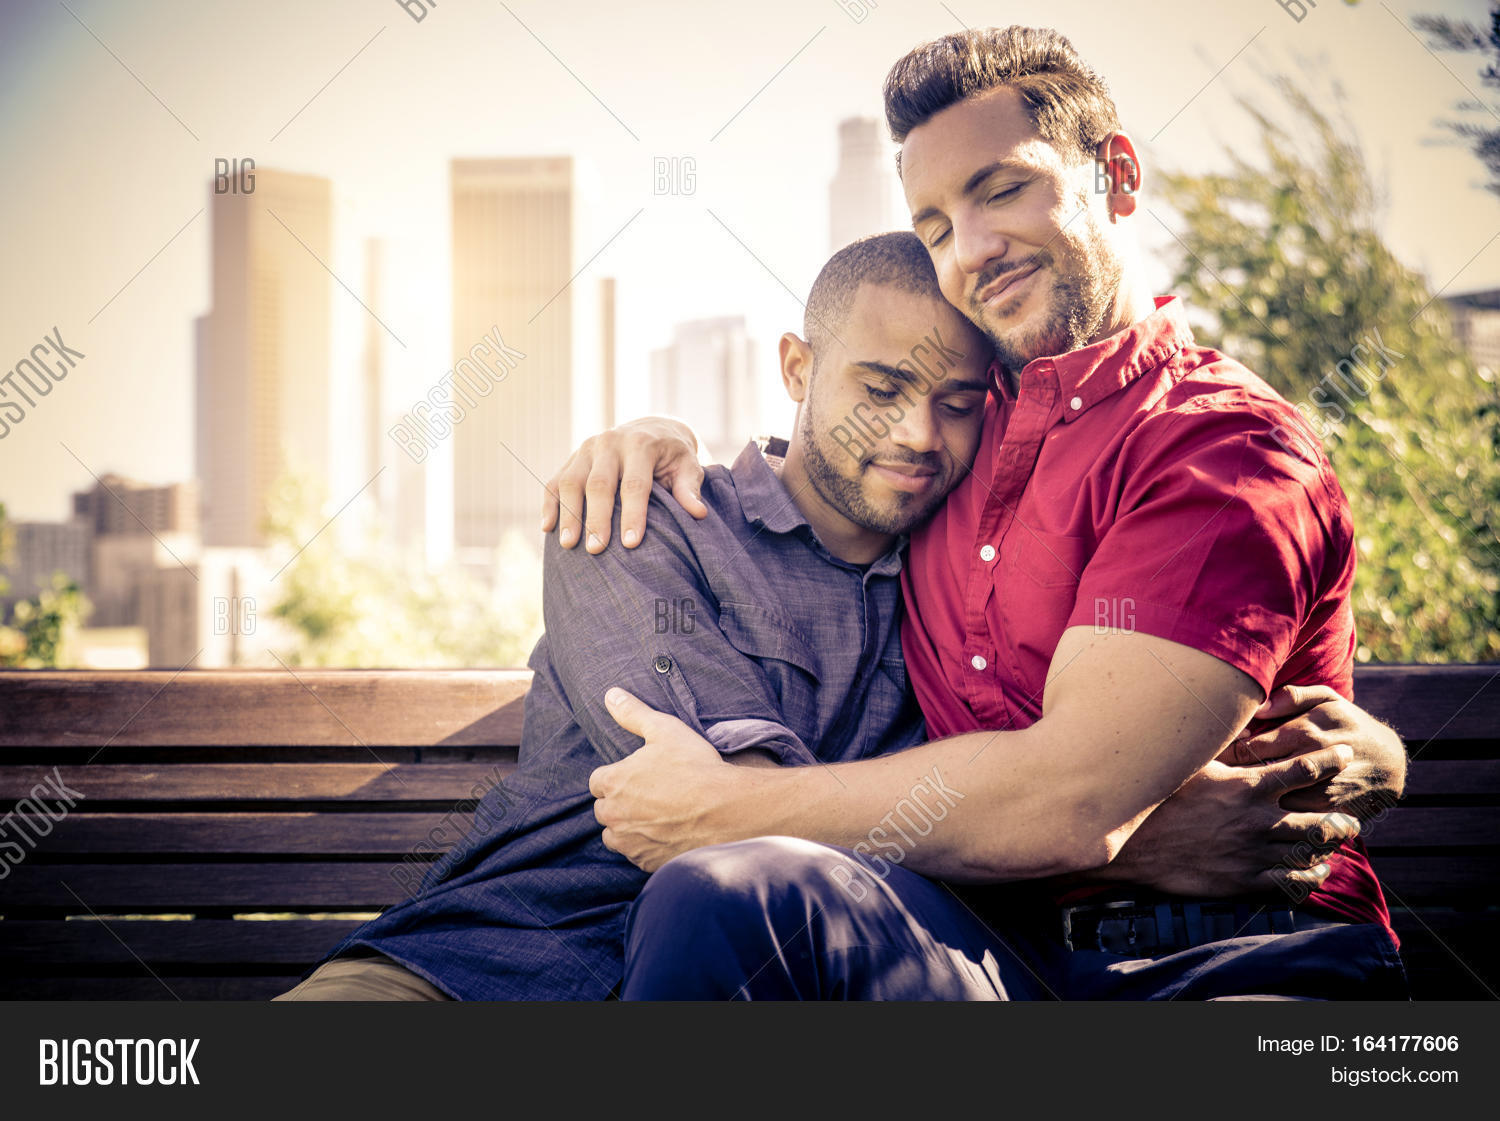 Gay Date Homosexual Couple Romantic Date Image And Photo Bigstock